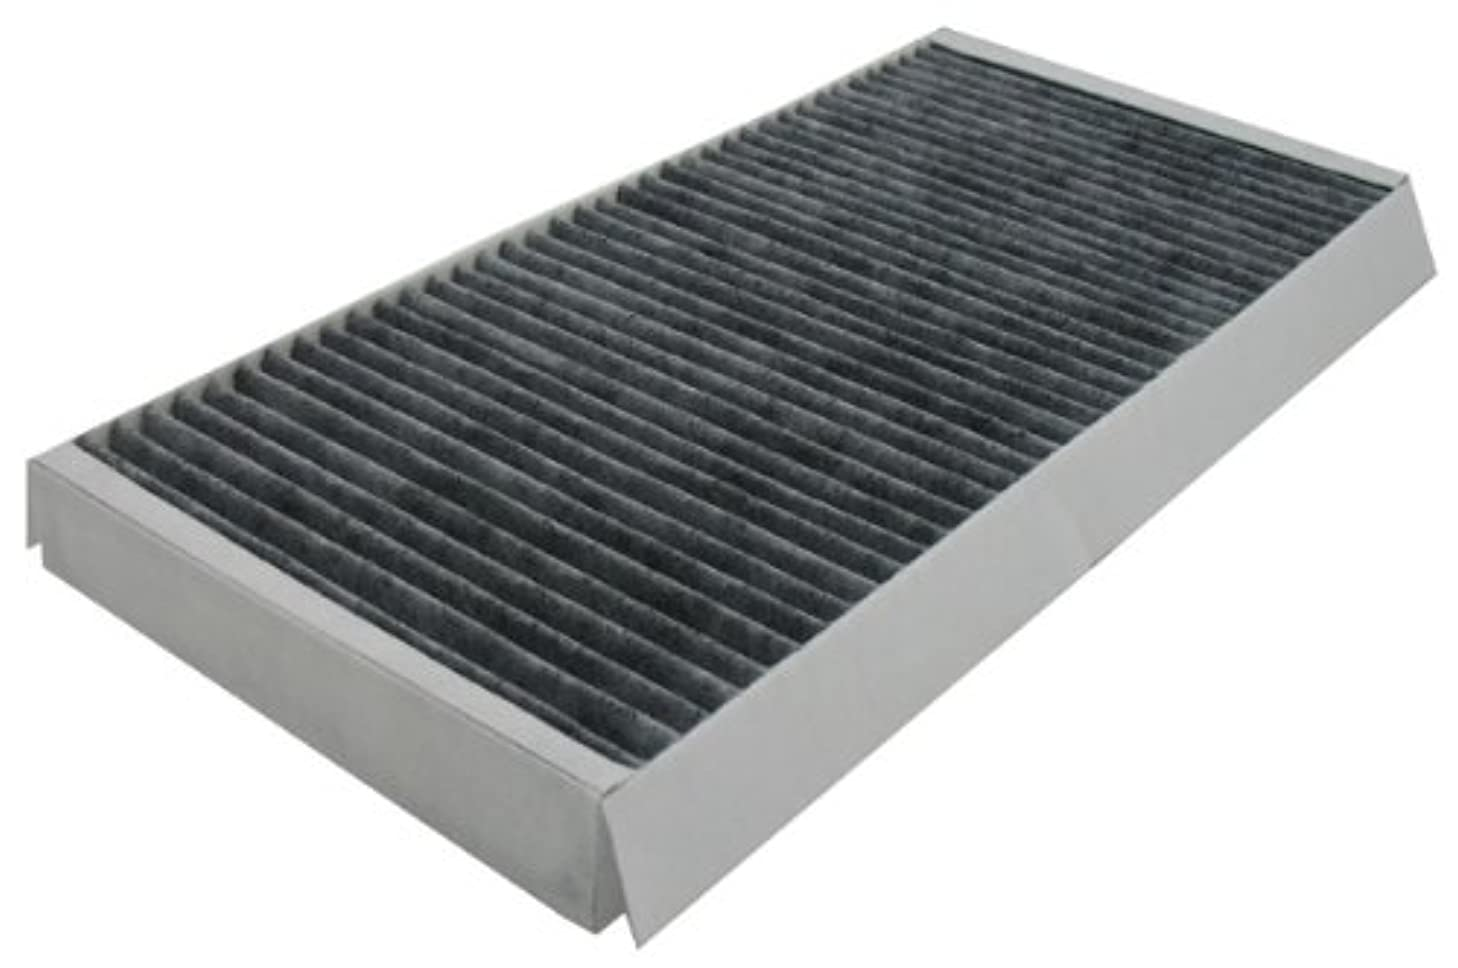 Pentius PHP5387 UltraFLOW Cabin Air Filter for Ford Focus (00-04)